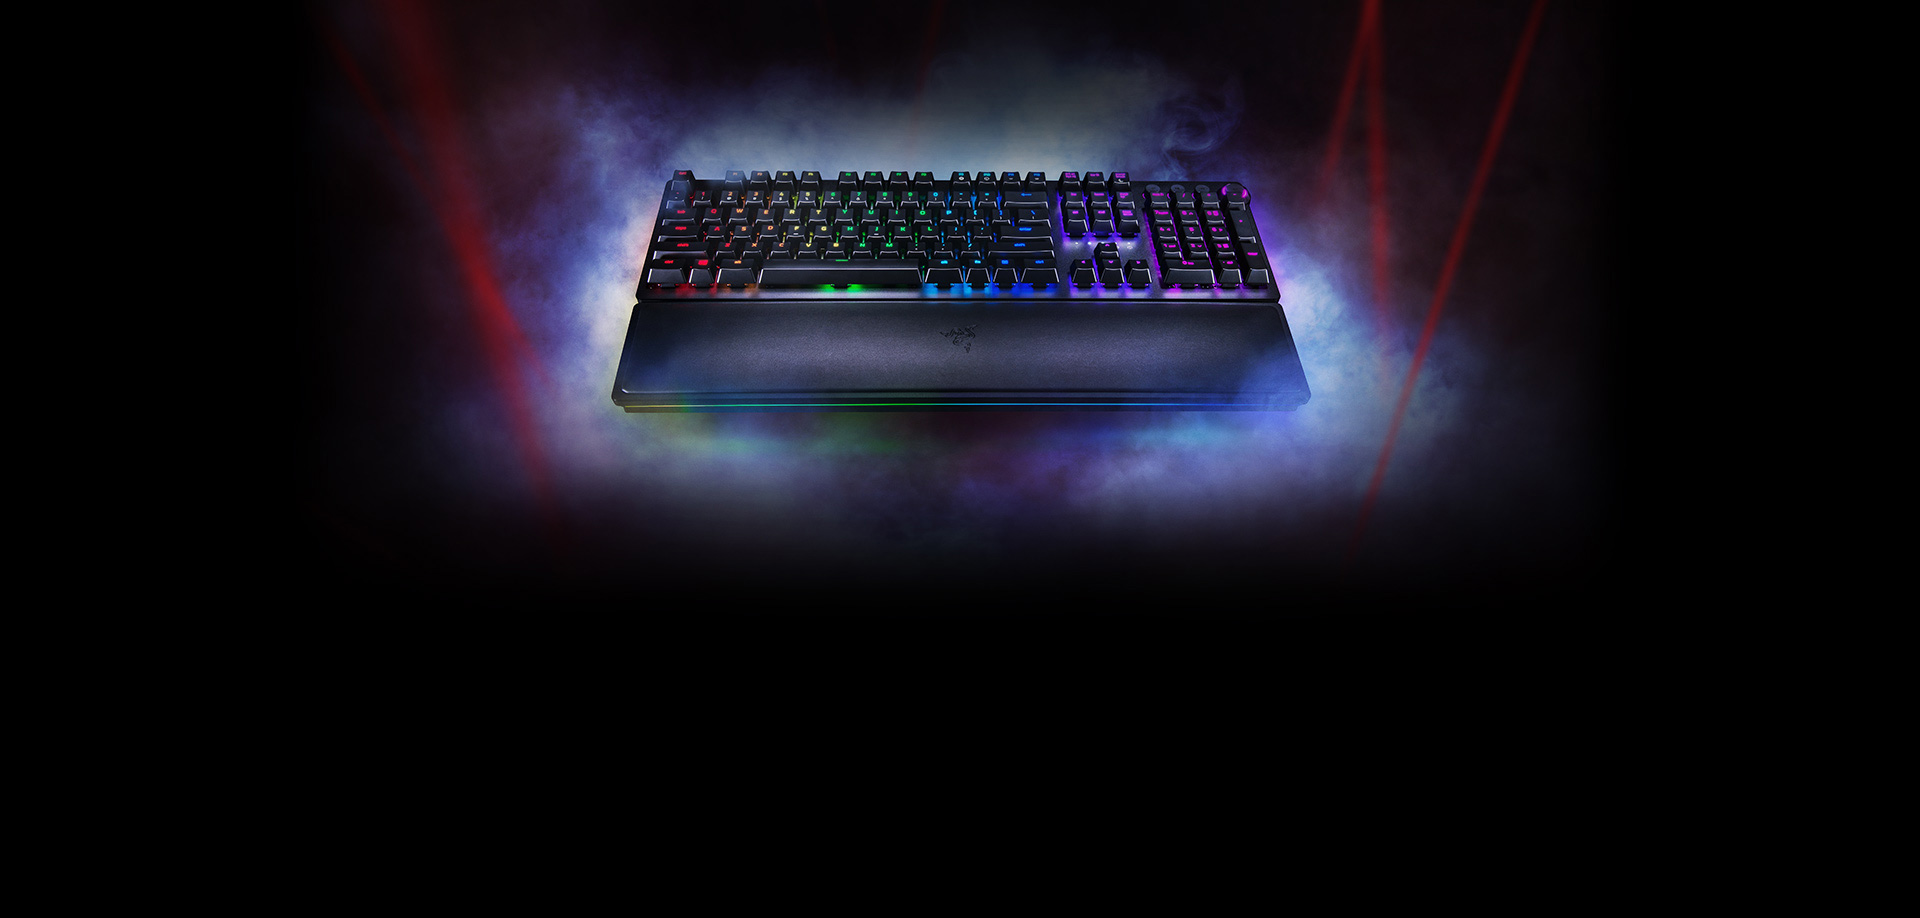 Razer™ - For Gamers  By Gamers  - Razer Brazil - Brazil